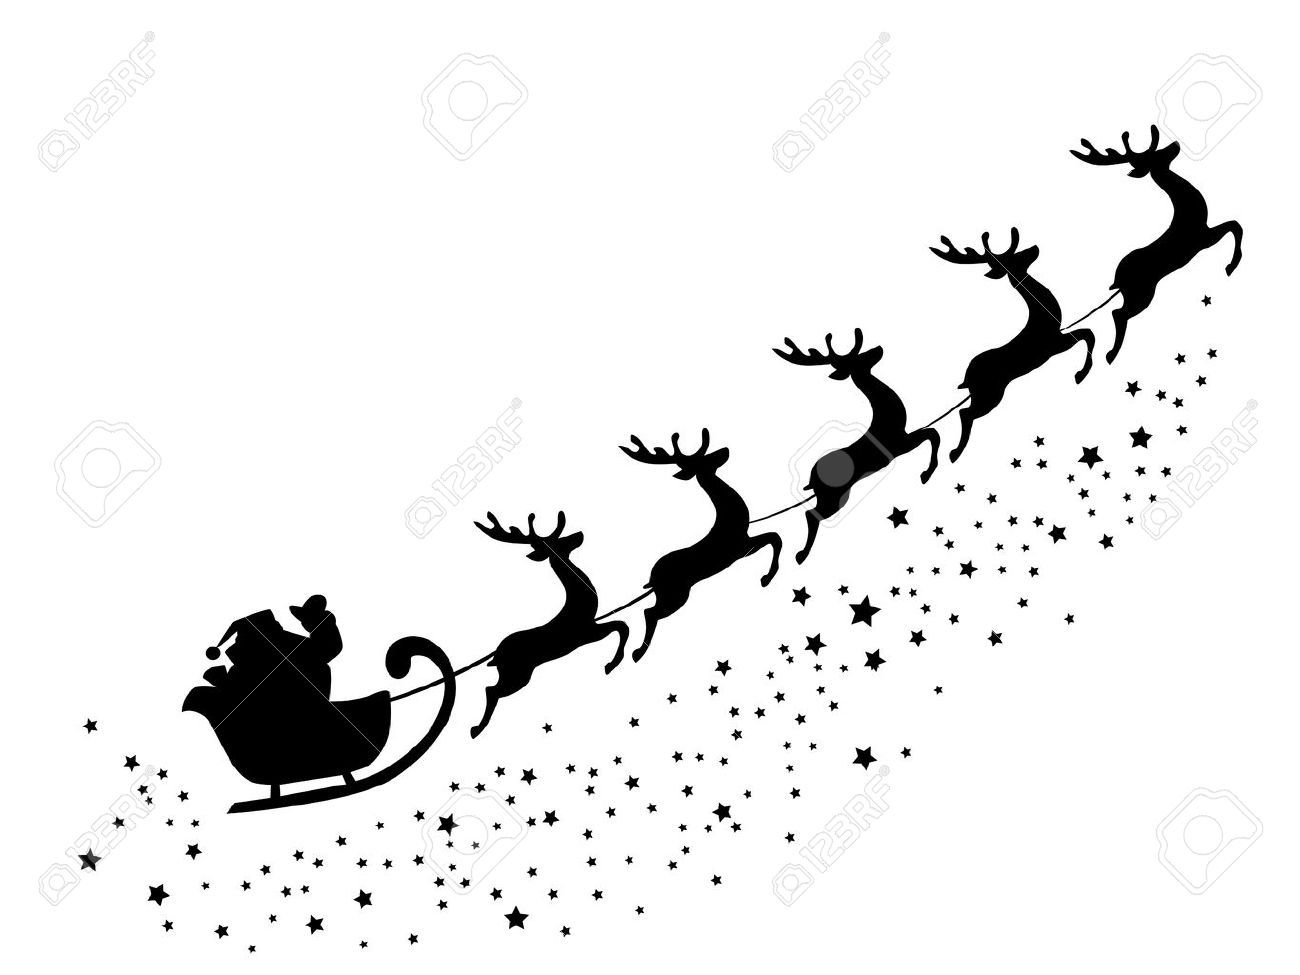 Vector Illustration Of Santa Claus Flying With Deer Santa Claus Vector Deer Illustration Santa And Reindeer